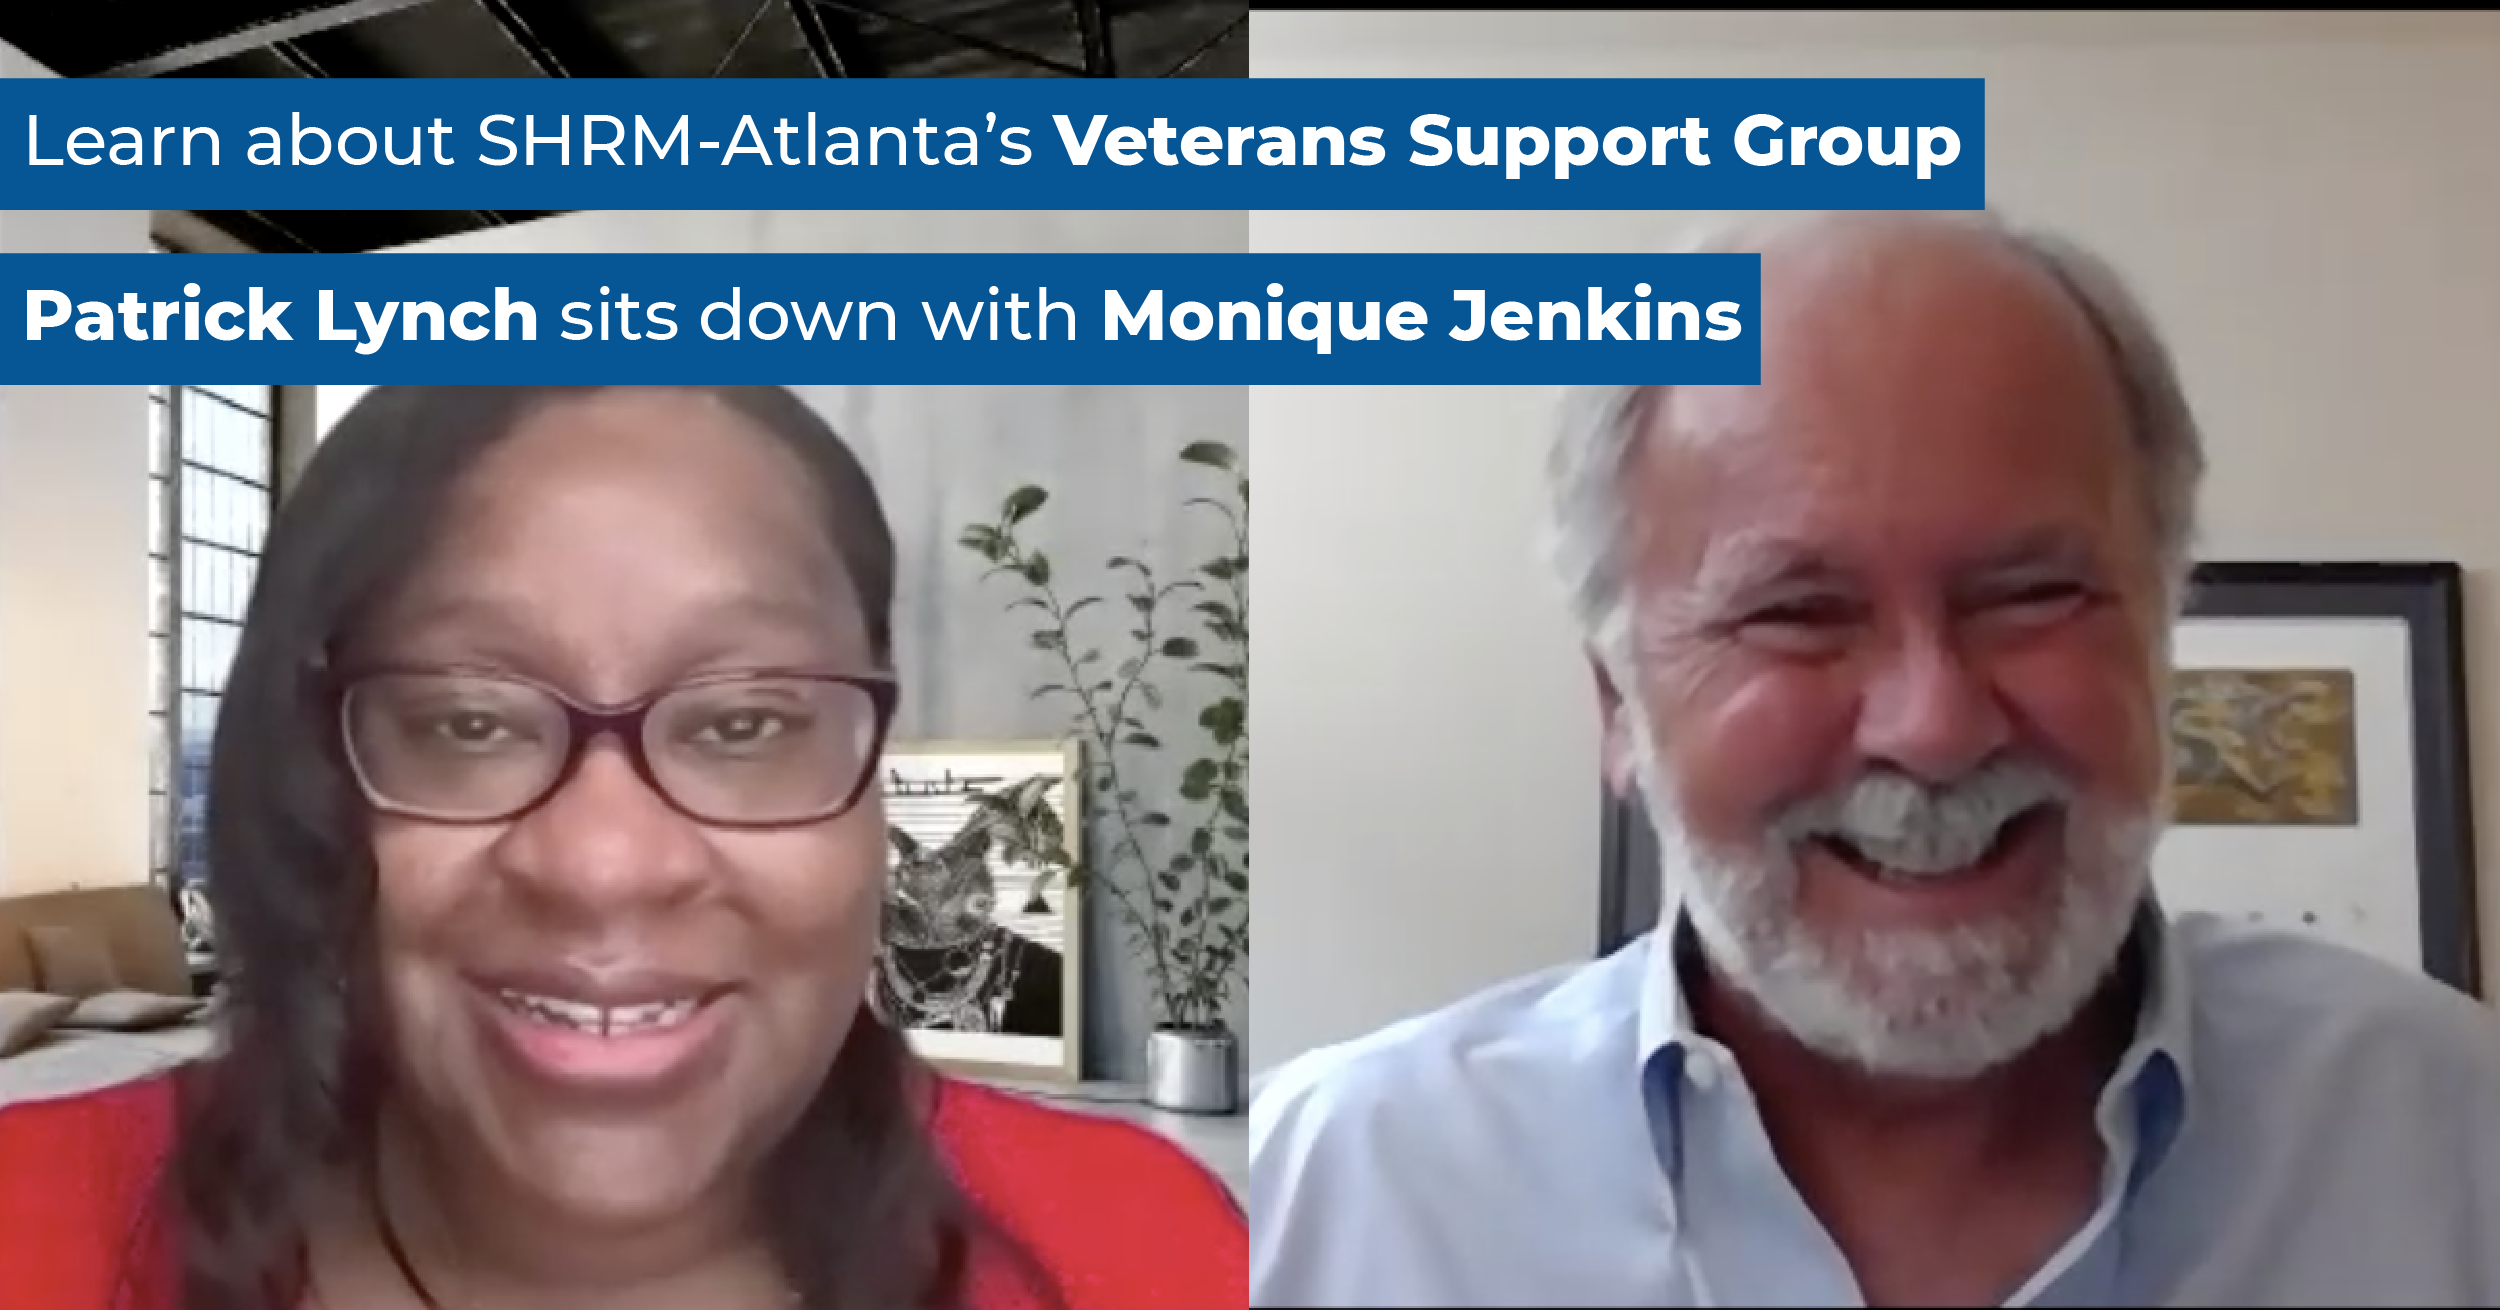 Learn about SHRM-Atlanta's Veterans Support Group! Patrick Lynch sits down with Monique Jenkins.